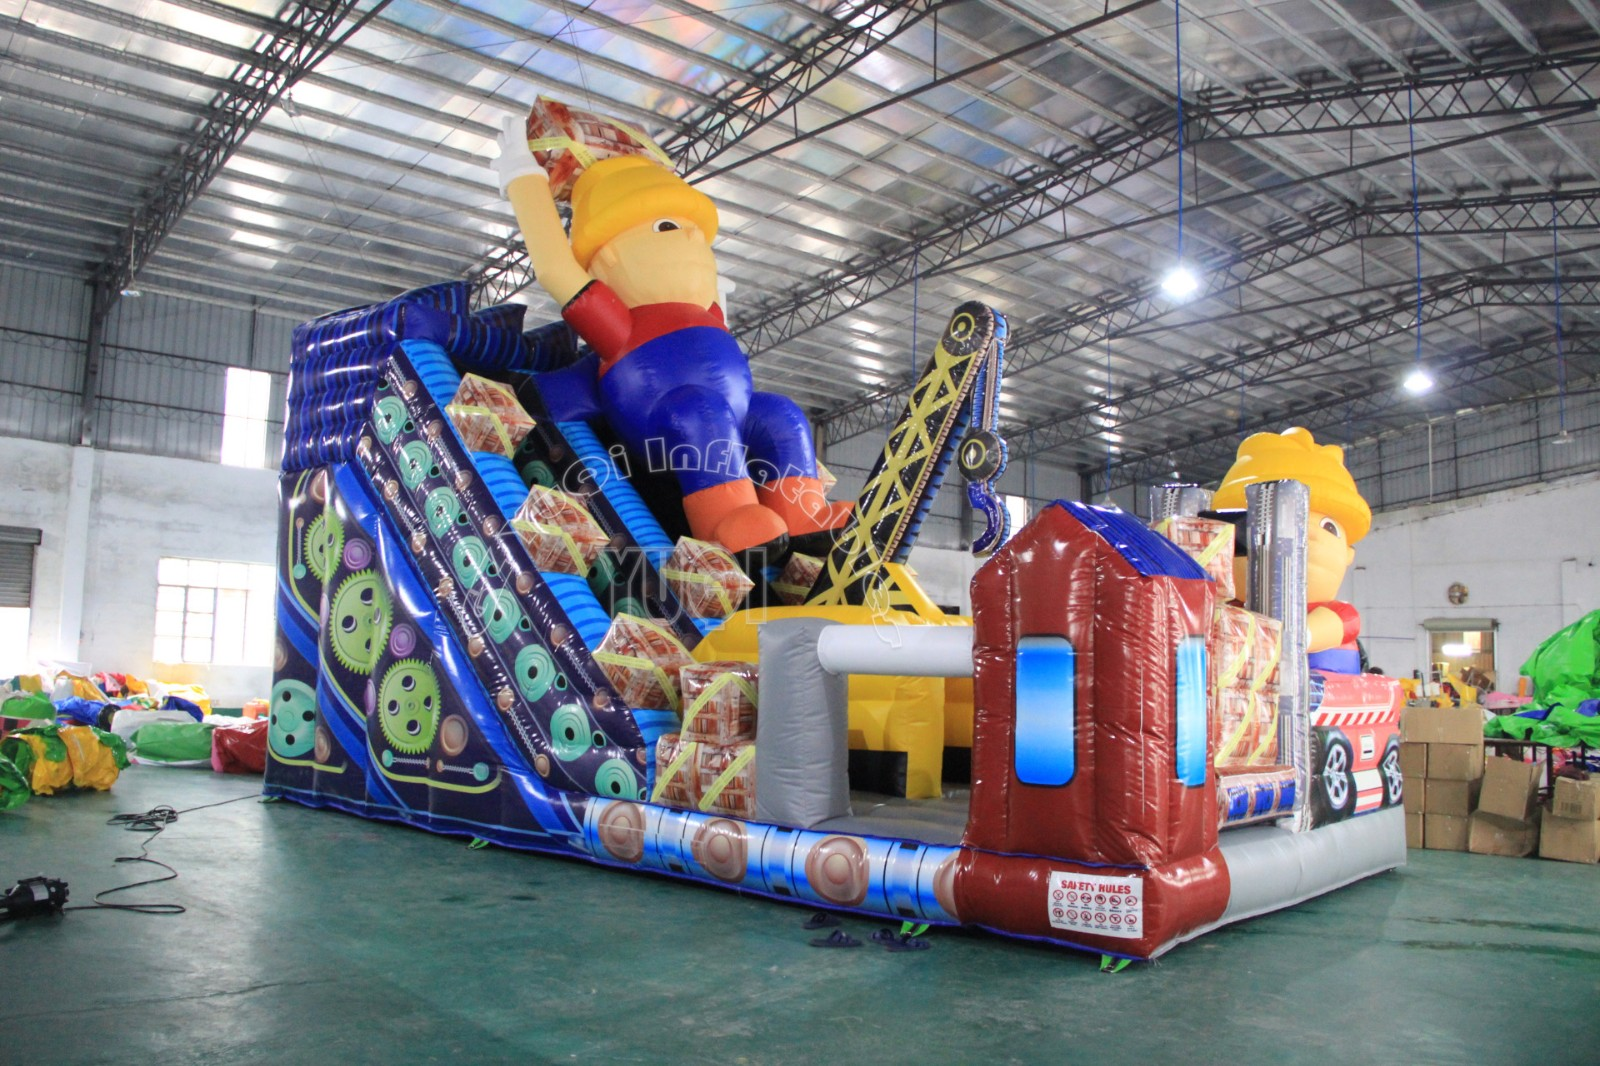 YUQI-Yq338 High Quality Blow Up Slide Inflatable Slide With Robot Theme